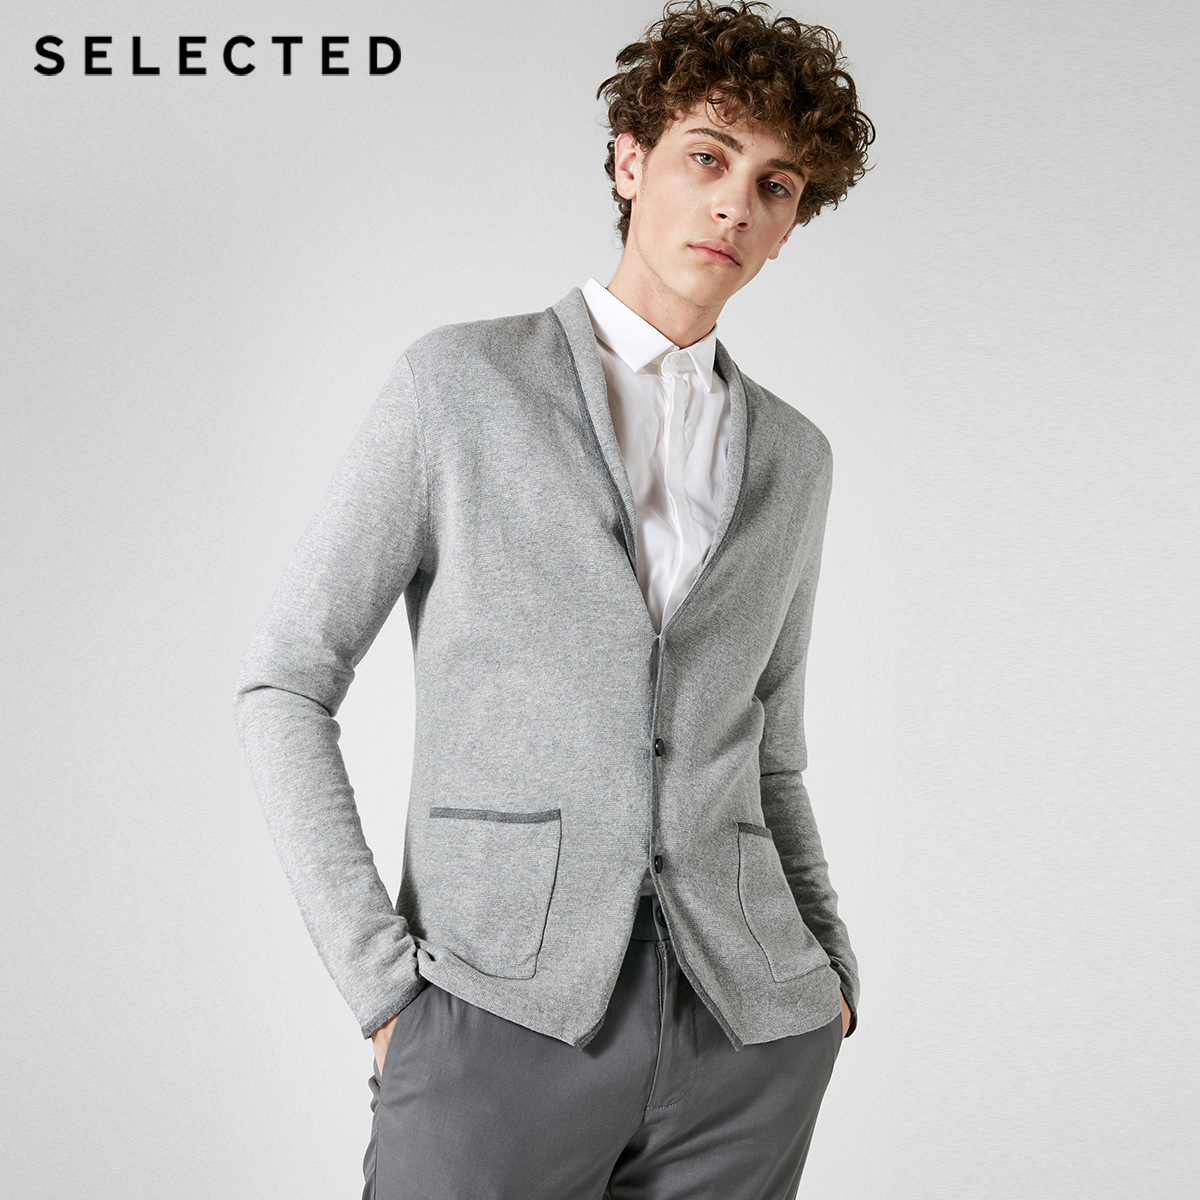 SELECTED Autumn Men's Wool-blend Assorted Colors Long-sleeved Cardigan Casaco Masculino Sweater Men S|417324513